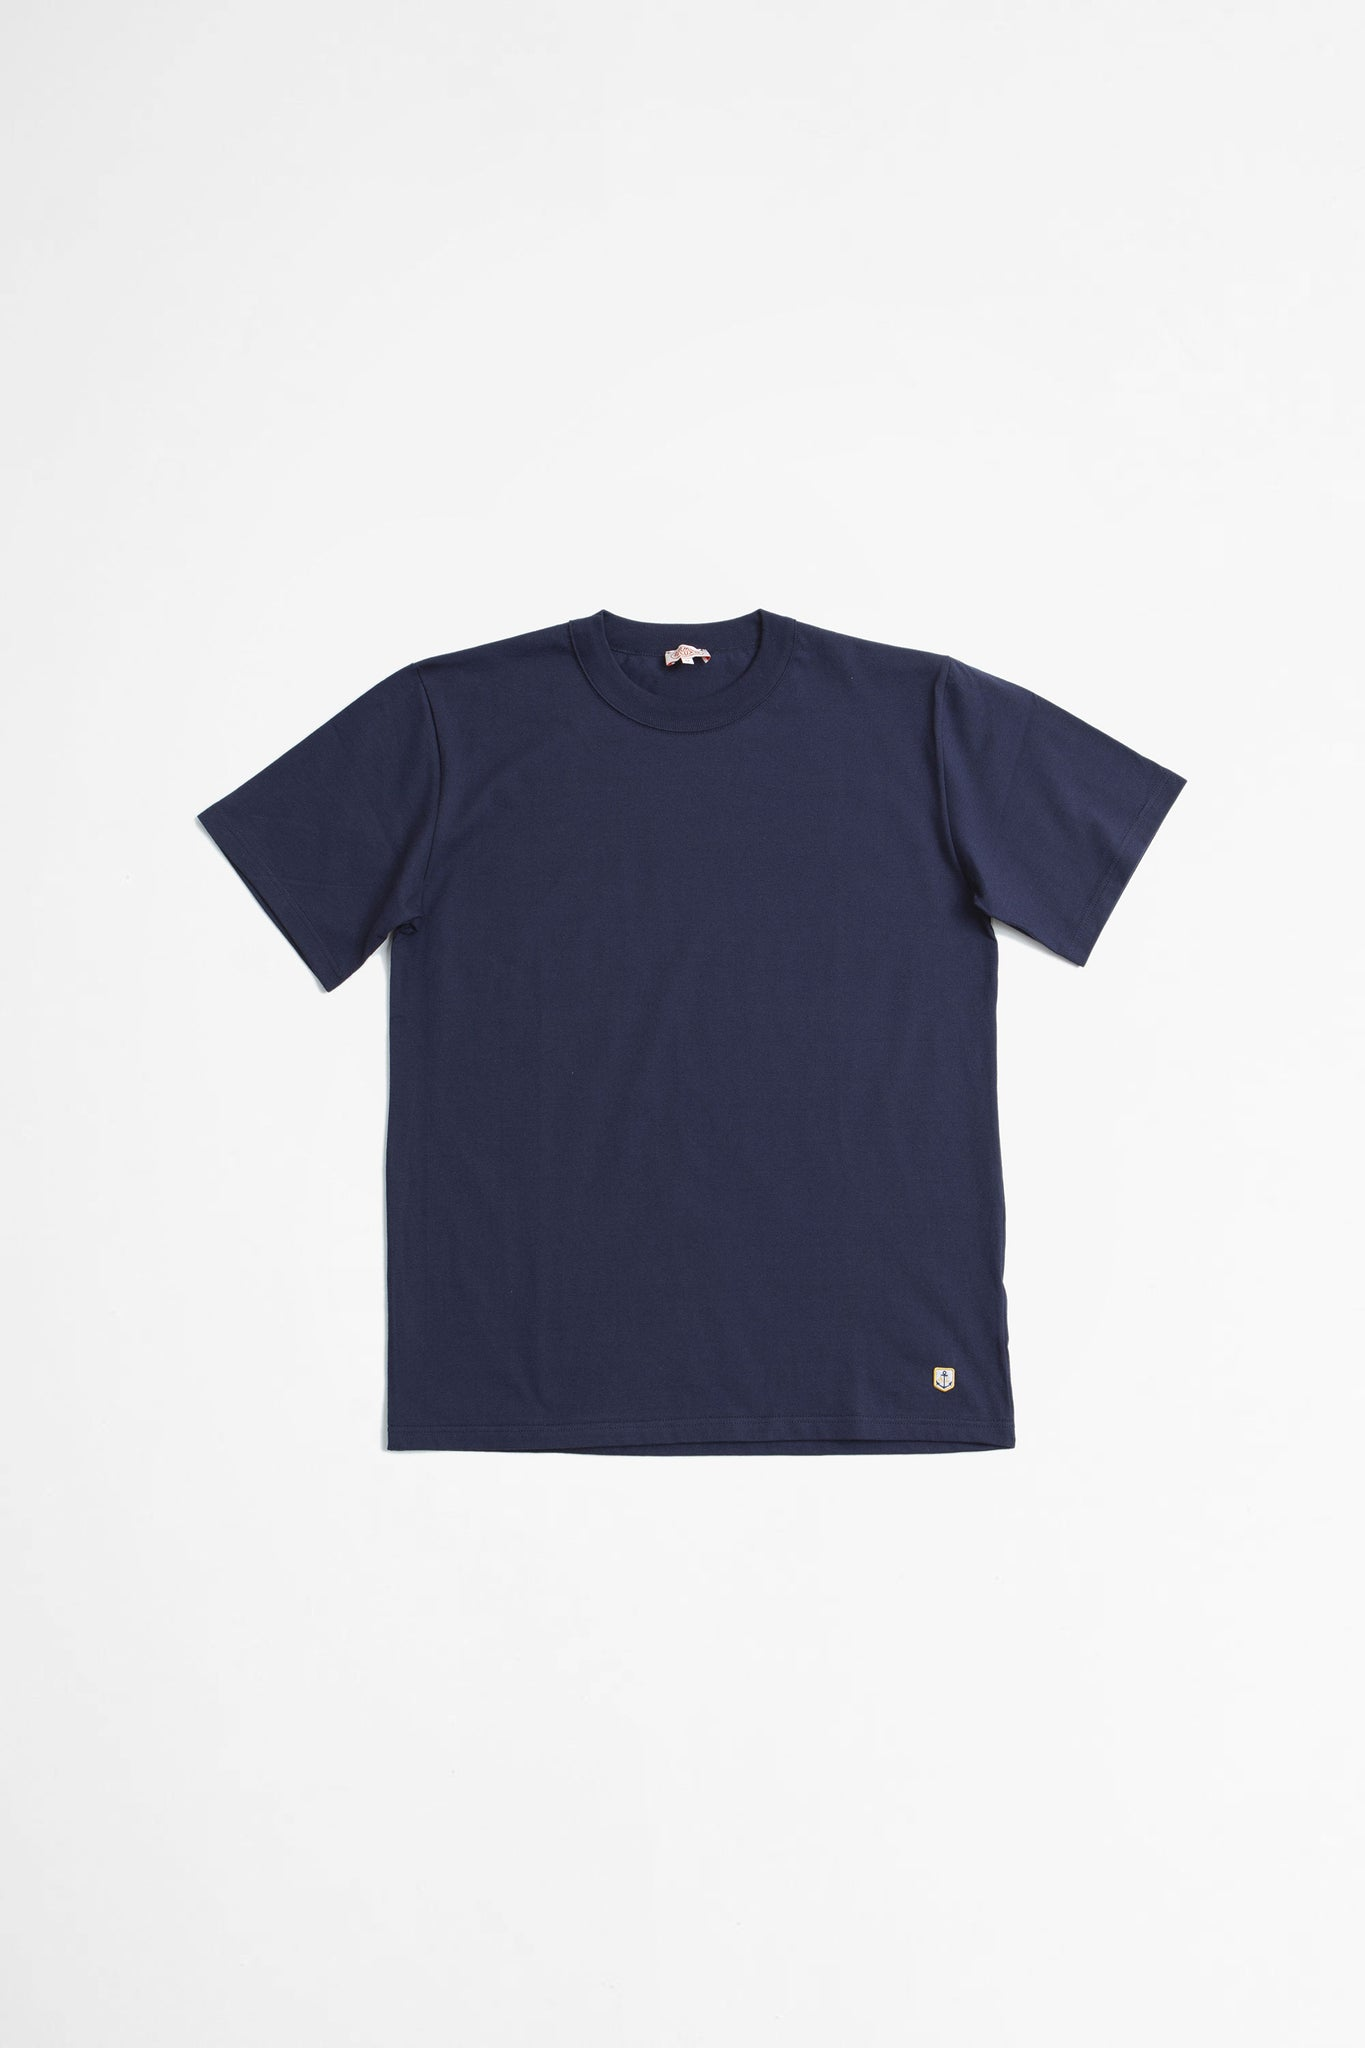 T-shirt Callac navy blue